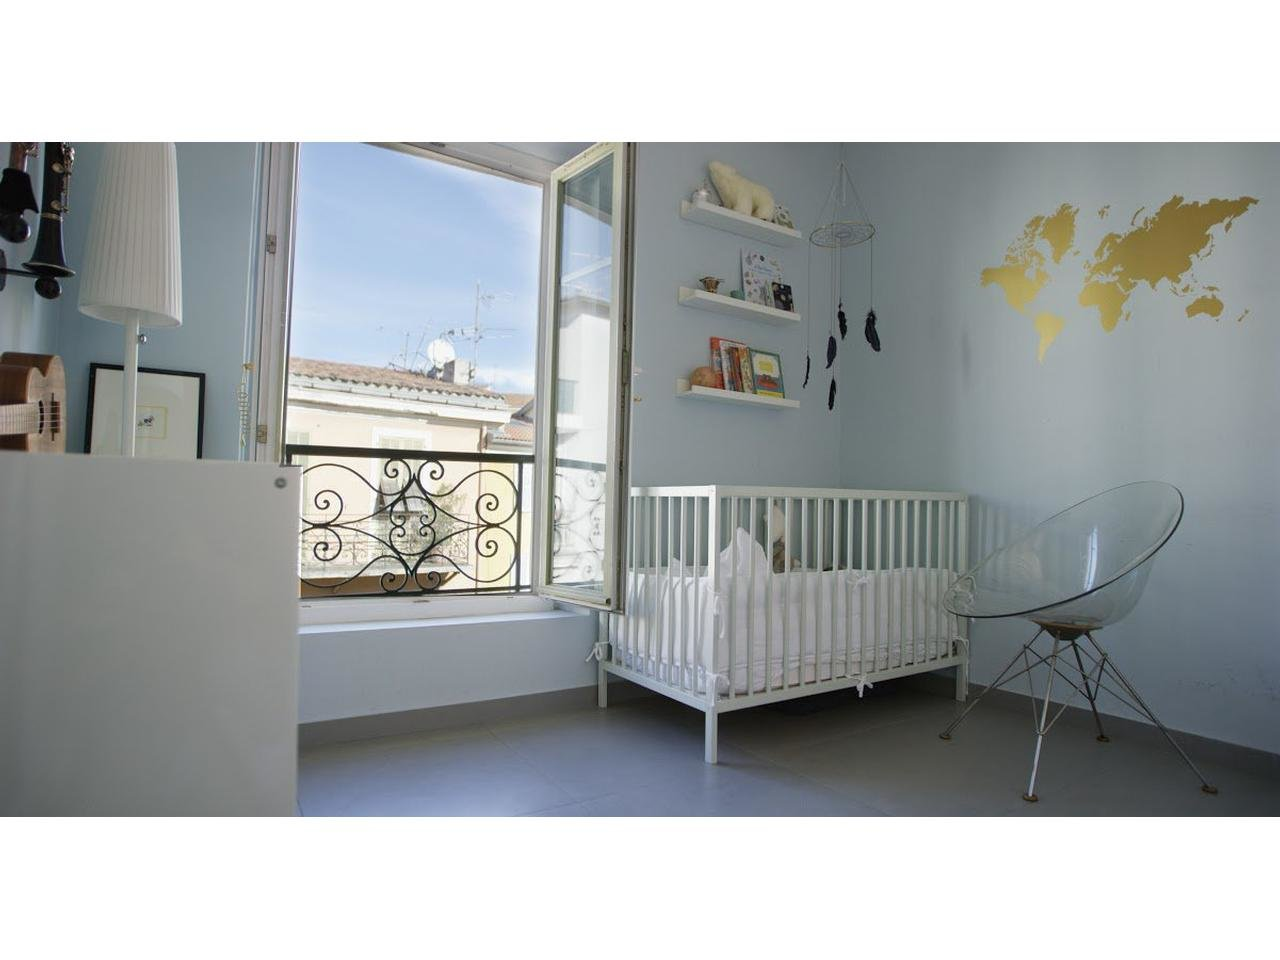 Appartement  3 Rooms 58.05m2  for sale   380000 €